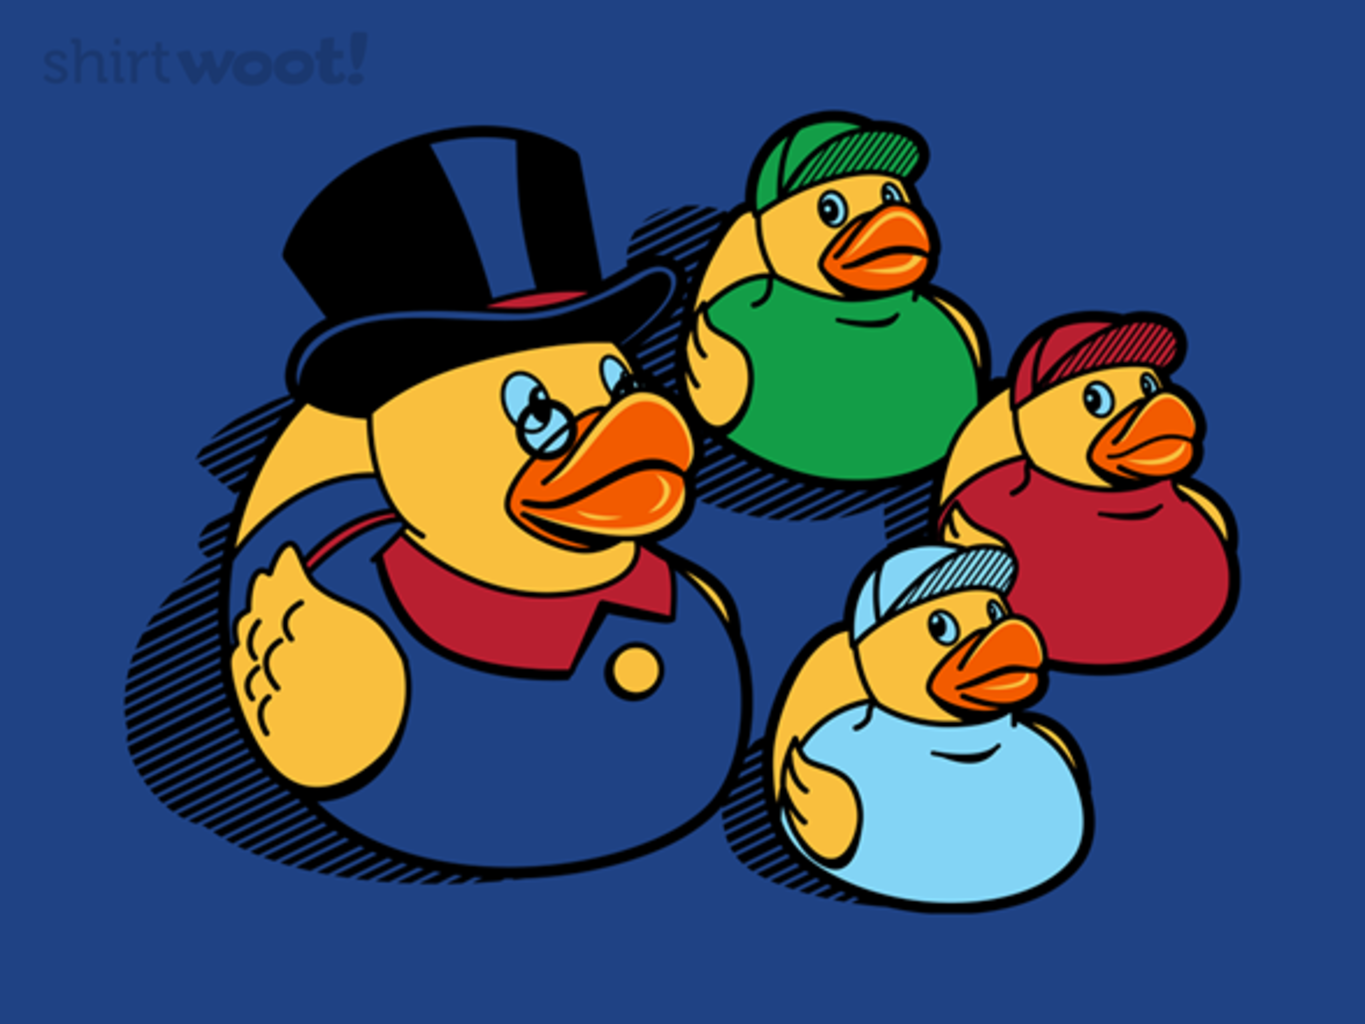 Woot!: Rubber Ducky Tales